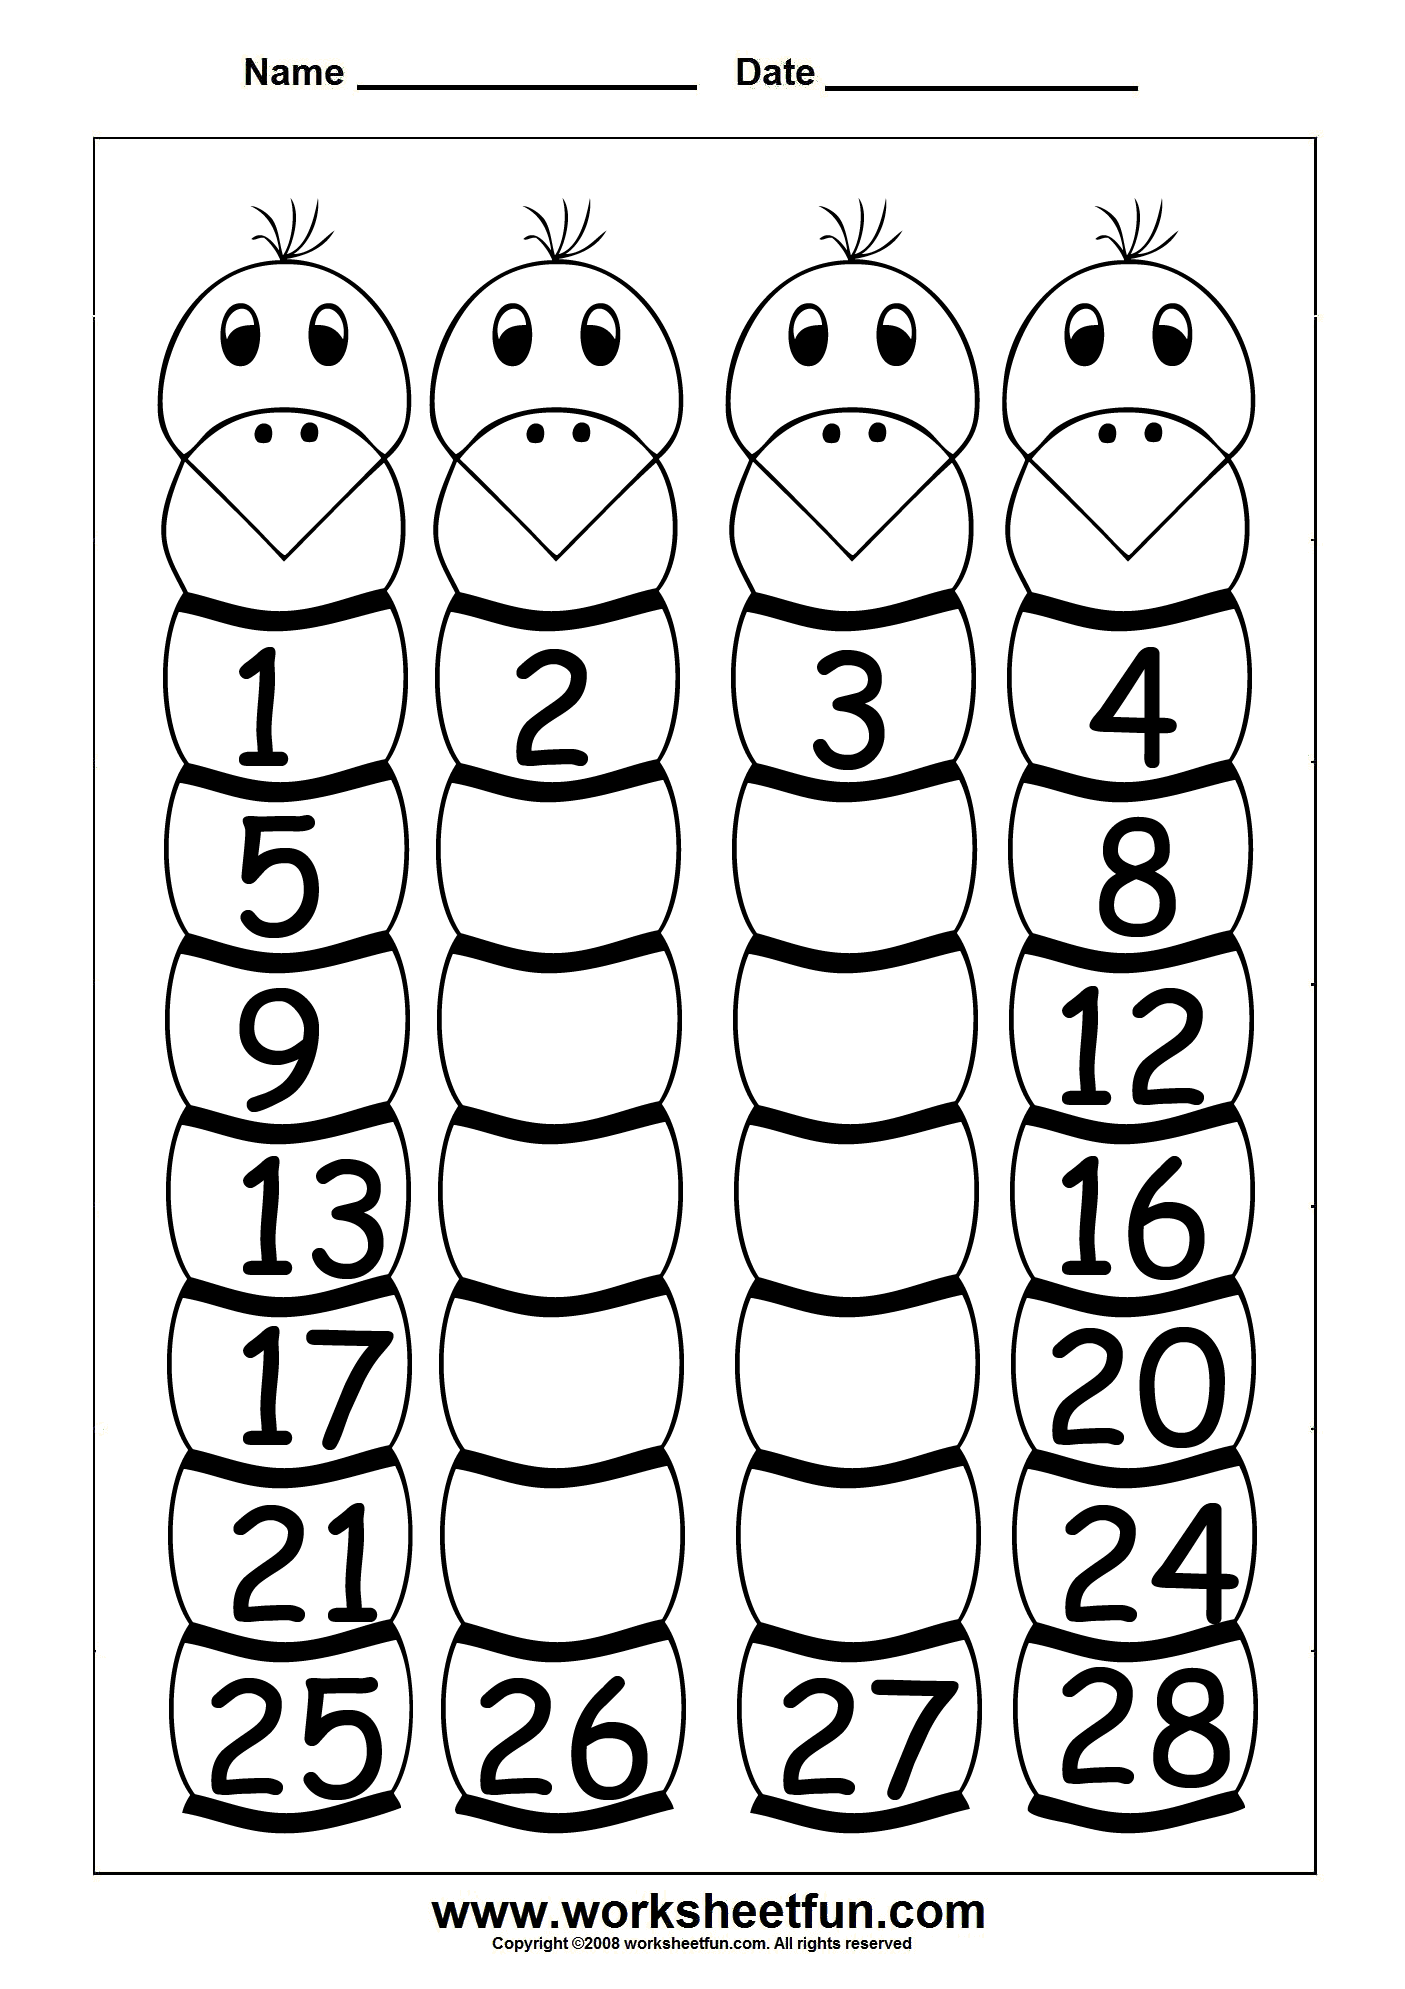 Number Worksheet Category Page 1